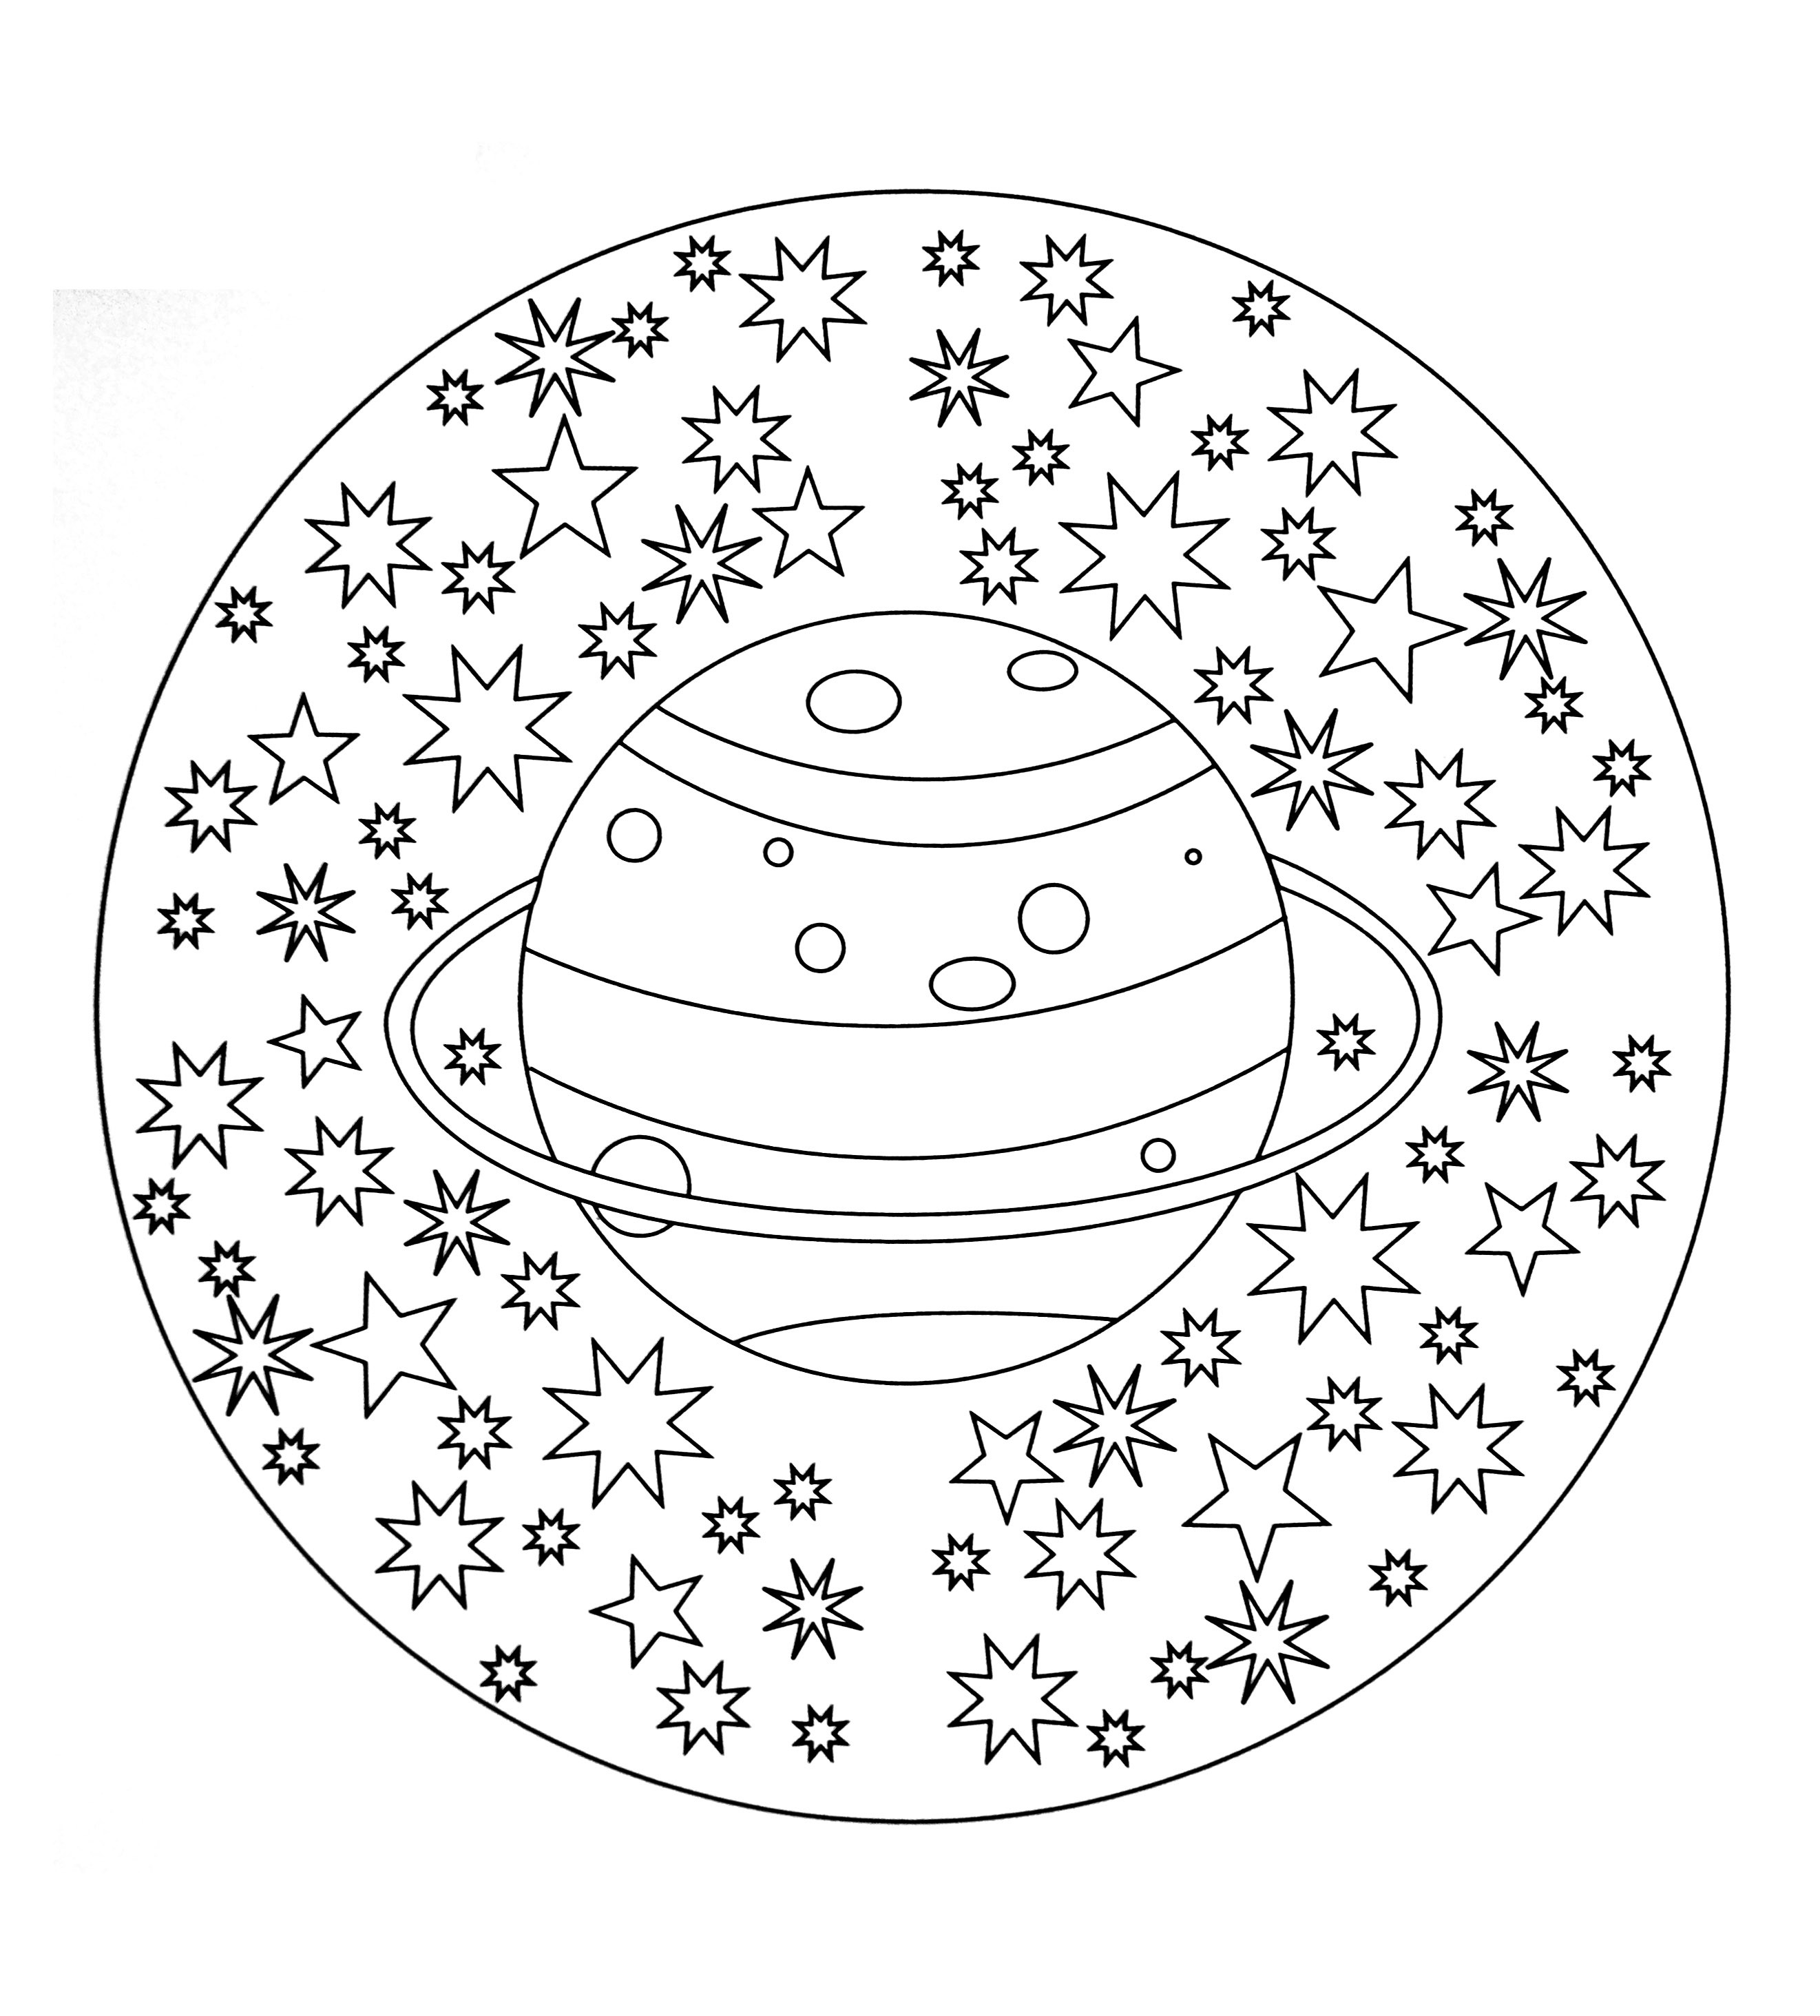 Mandala Coloring Sheets For Kids  Free mandala to color planet stars M&alas Adult